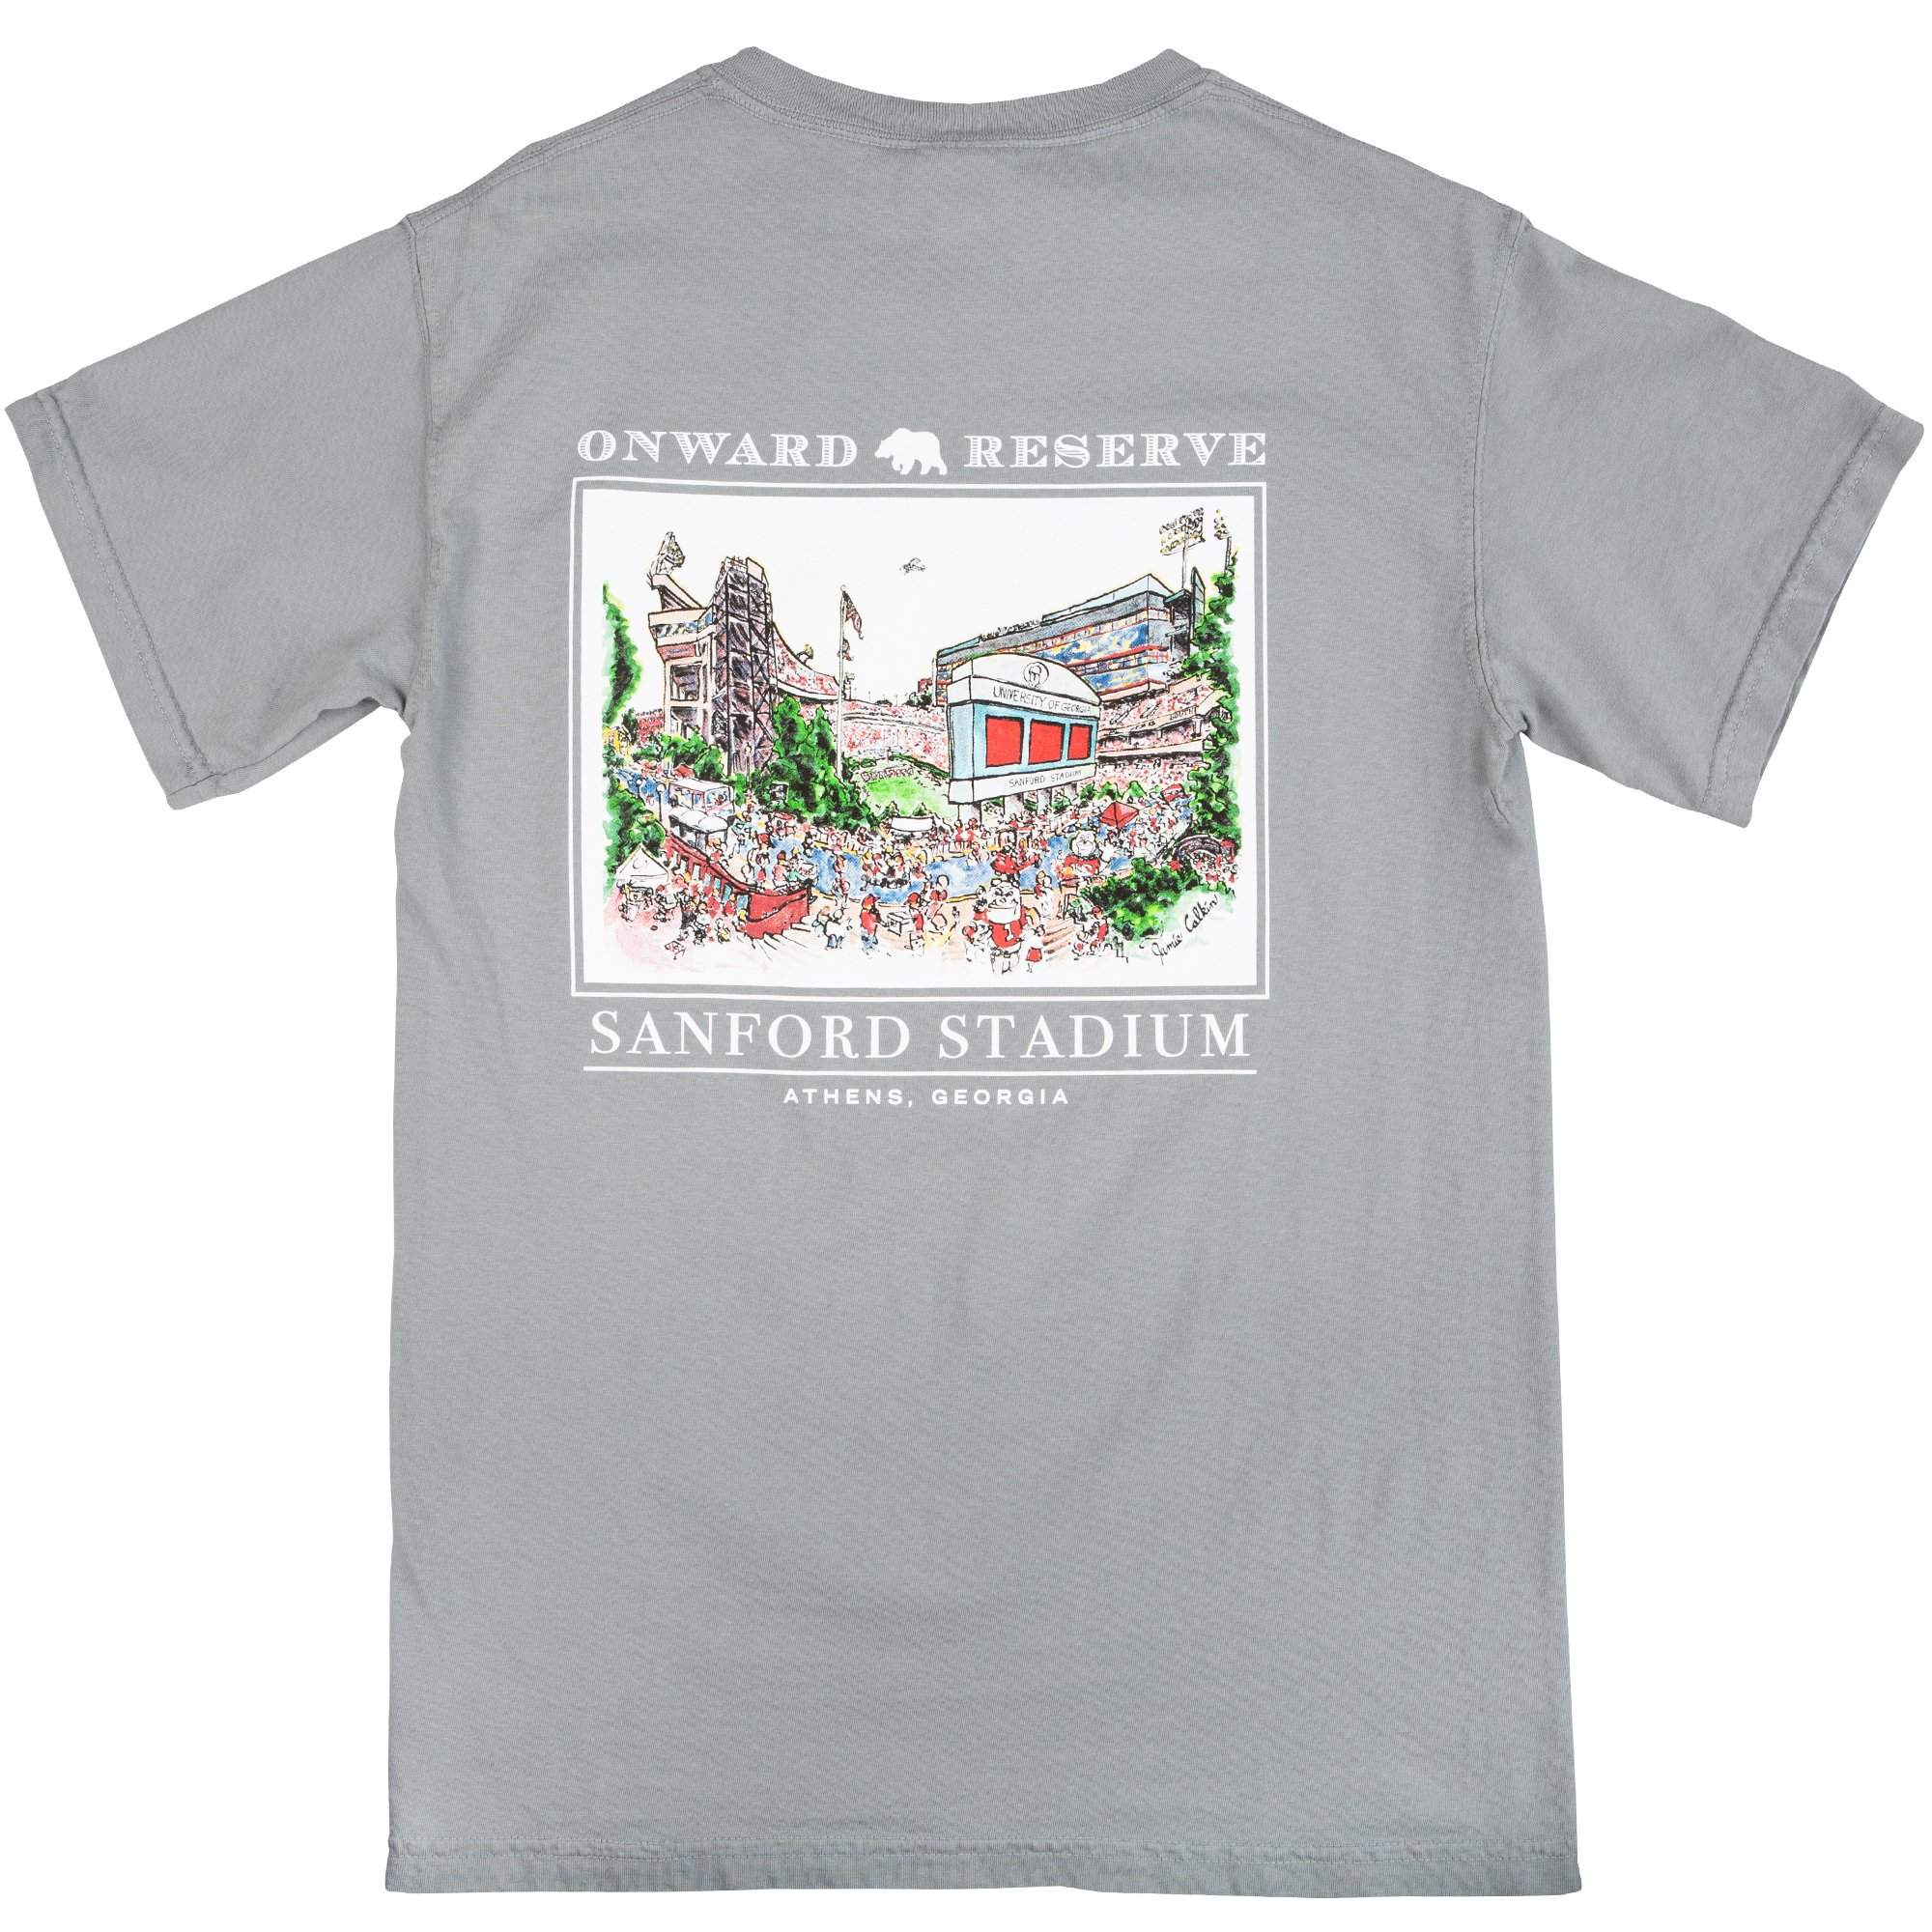 OR-Jamie-Tee-SS-Sanford-Stadium-Grey-Back.jpg